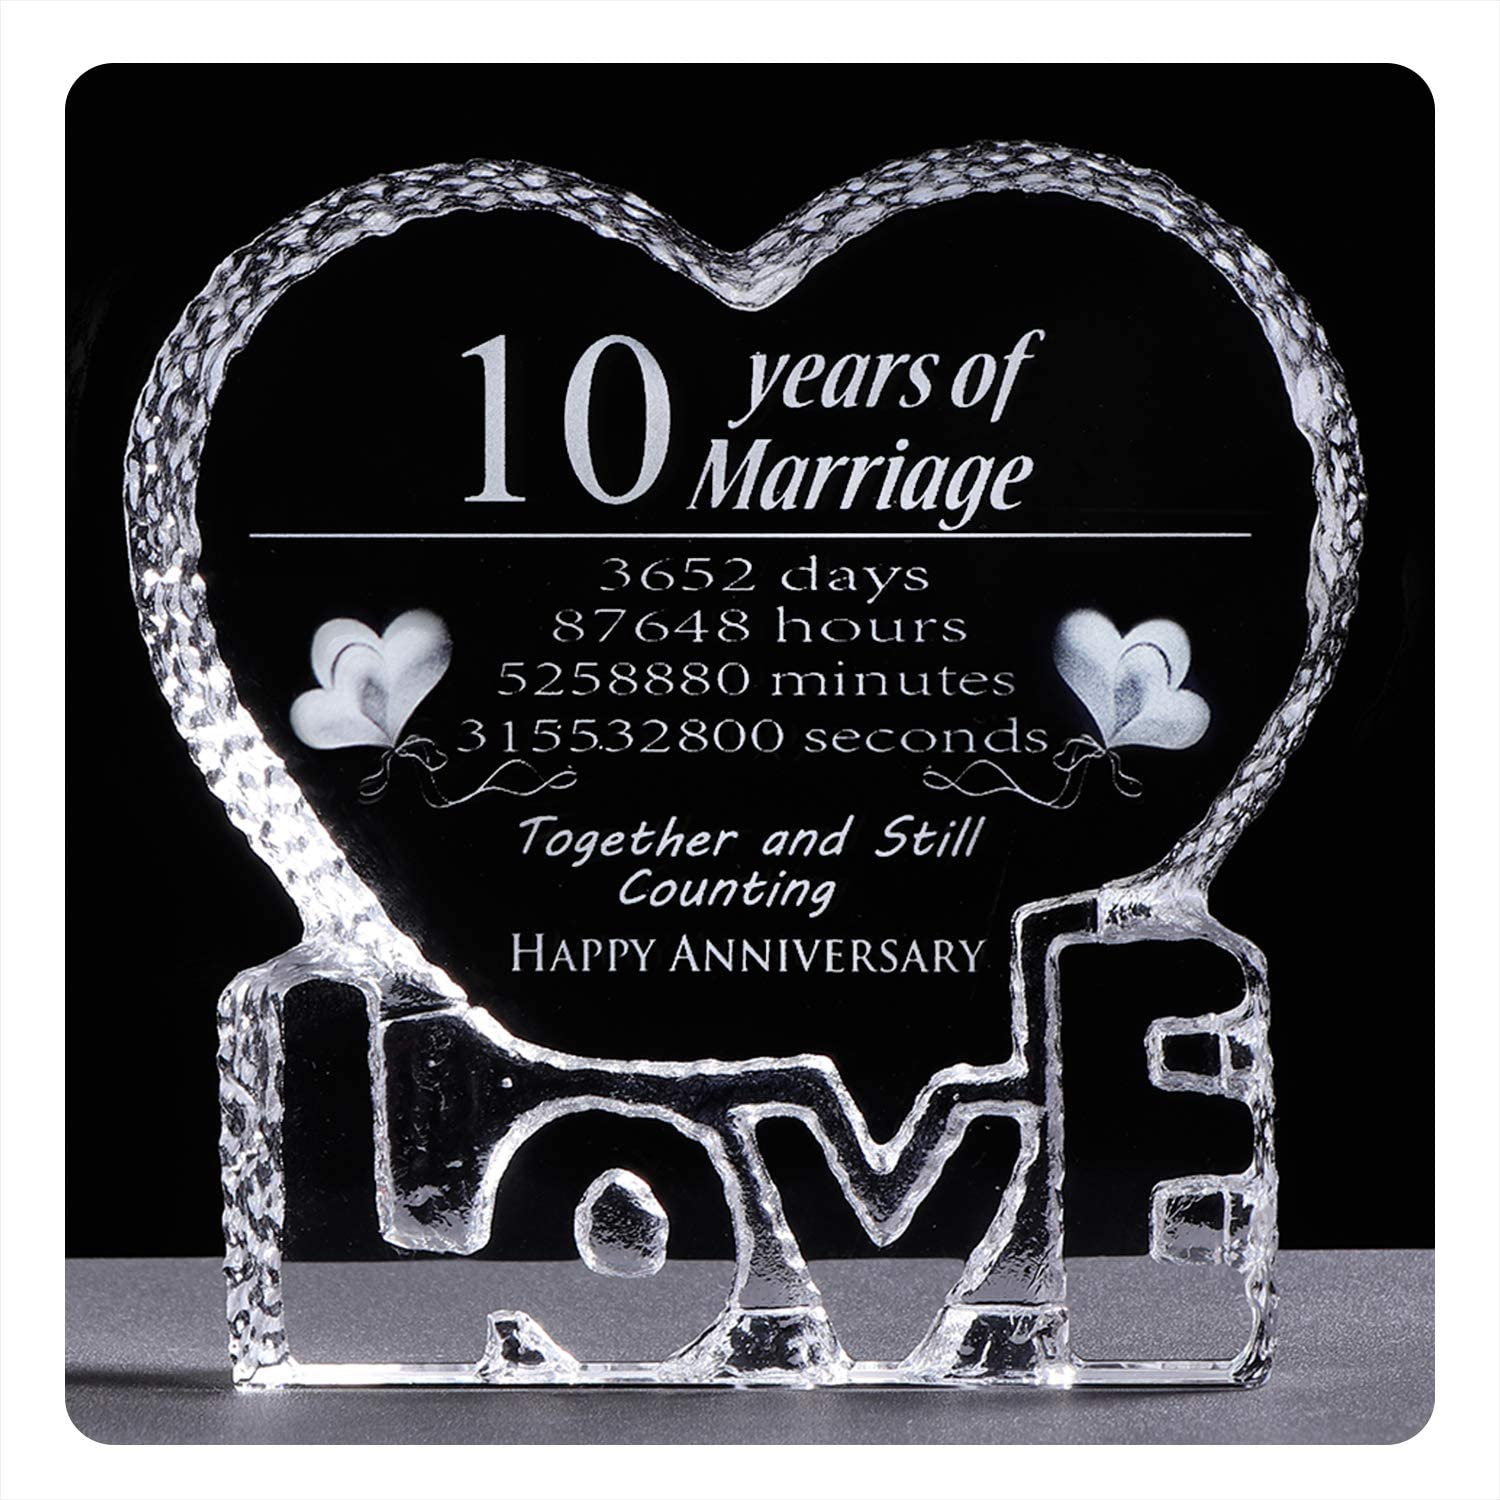 Amazon Com Ywhl 10 Year Crystal 10th Wedding Anniversary Paperweight Keepsake Gift For Her Wife Girlfriend Him Husband Office Products